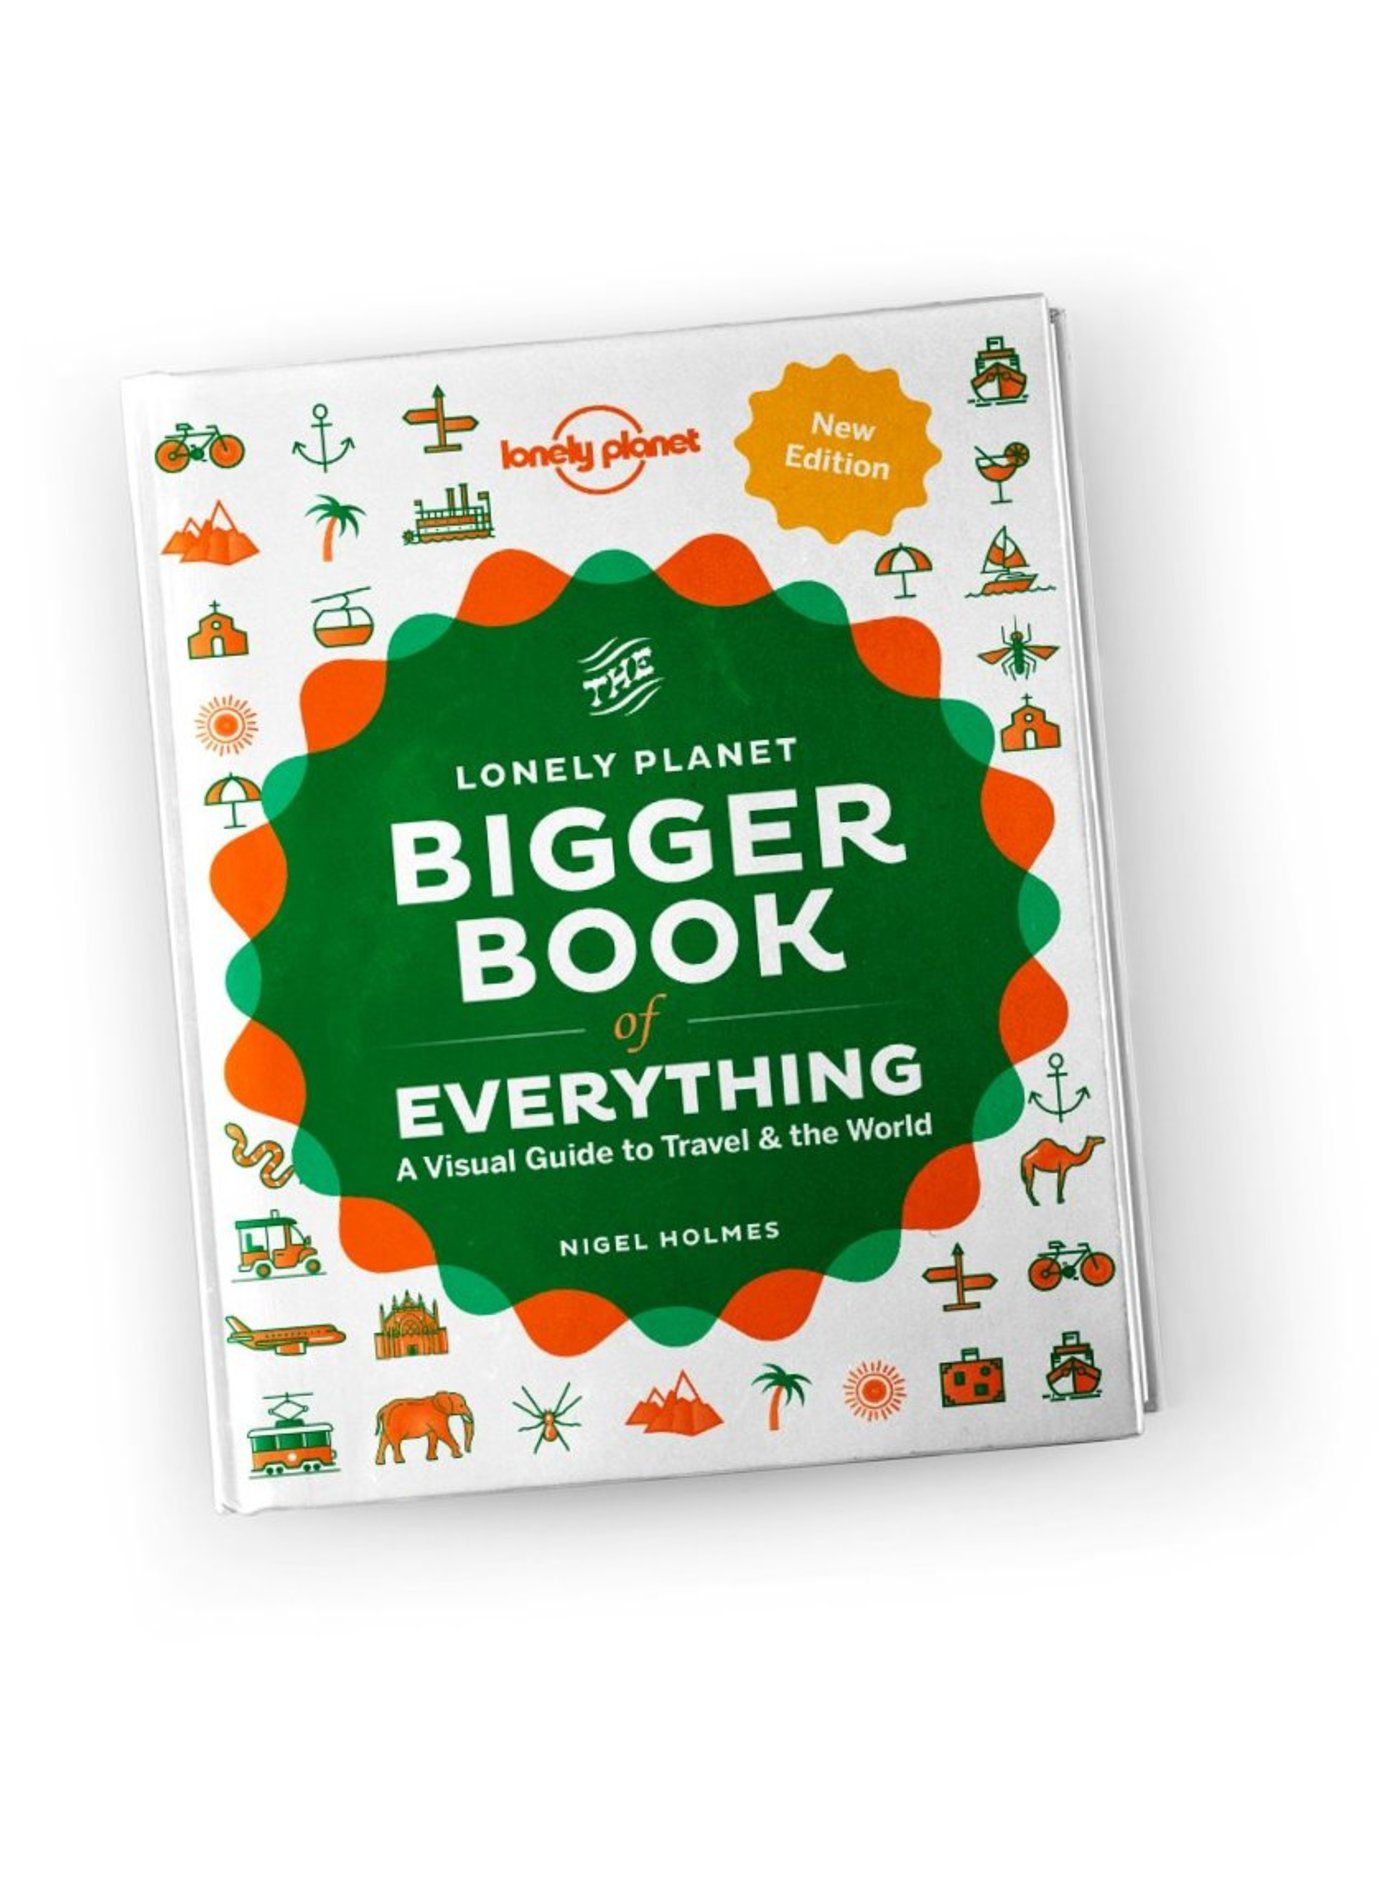 The Bigger Book of Everything